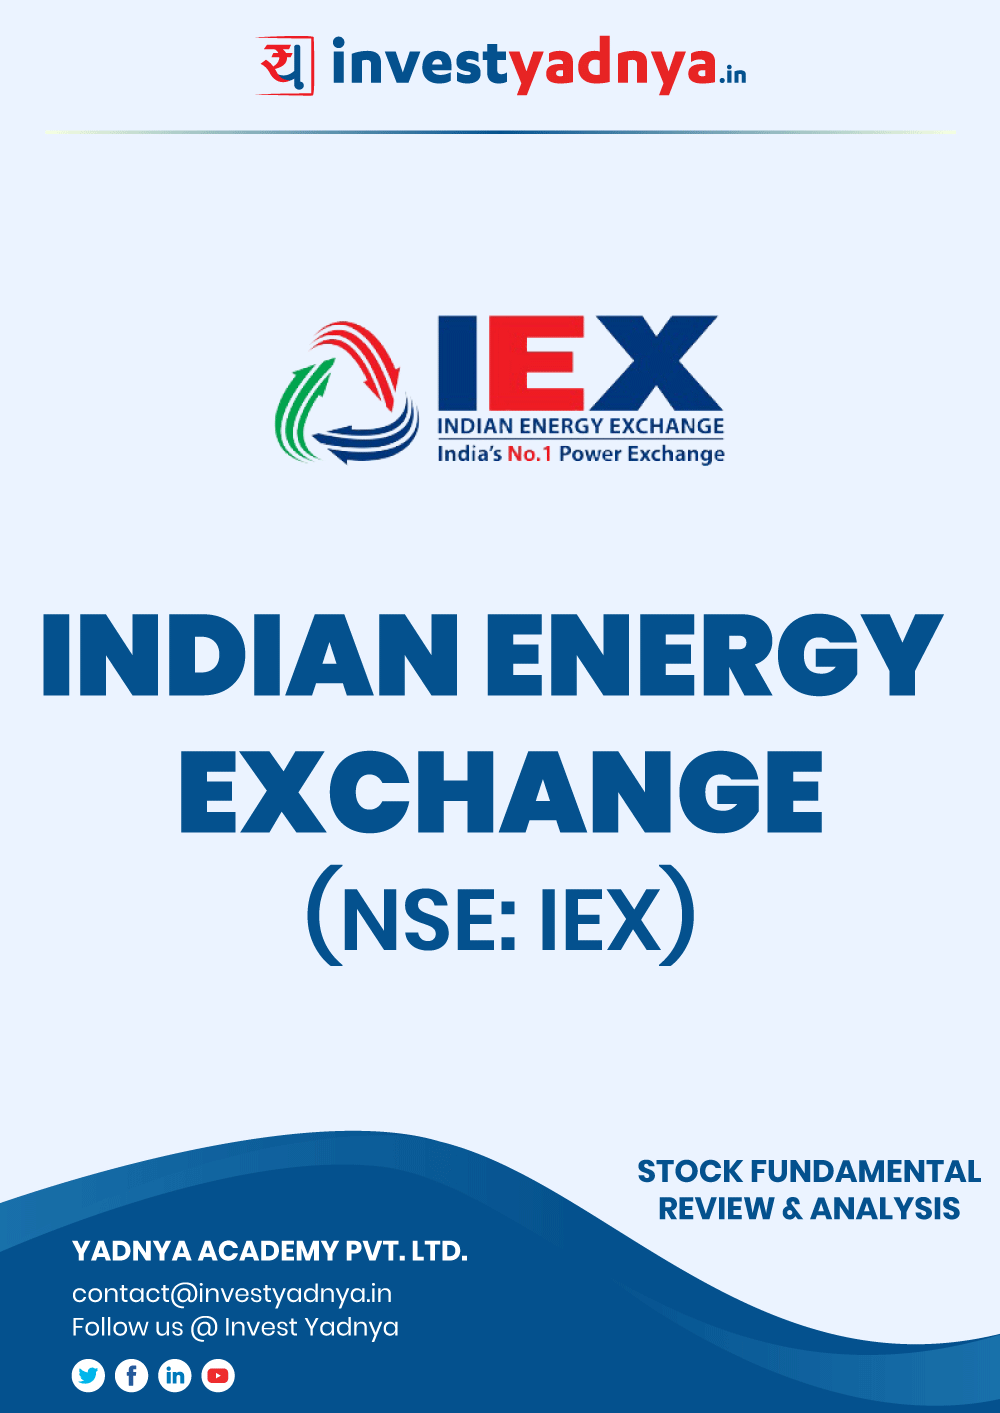 Indian Energy Exchange Ltd. Company/Stock Review & Analysis based on Q1 2020-21 and FY2019-20 data. The book contains Fundamental Analysis of the company considering both Quantitative (Financial) and Qualitative Parameters. Indian Energy Exchange is the biggest Power Exchange in India.